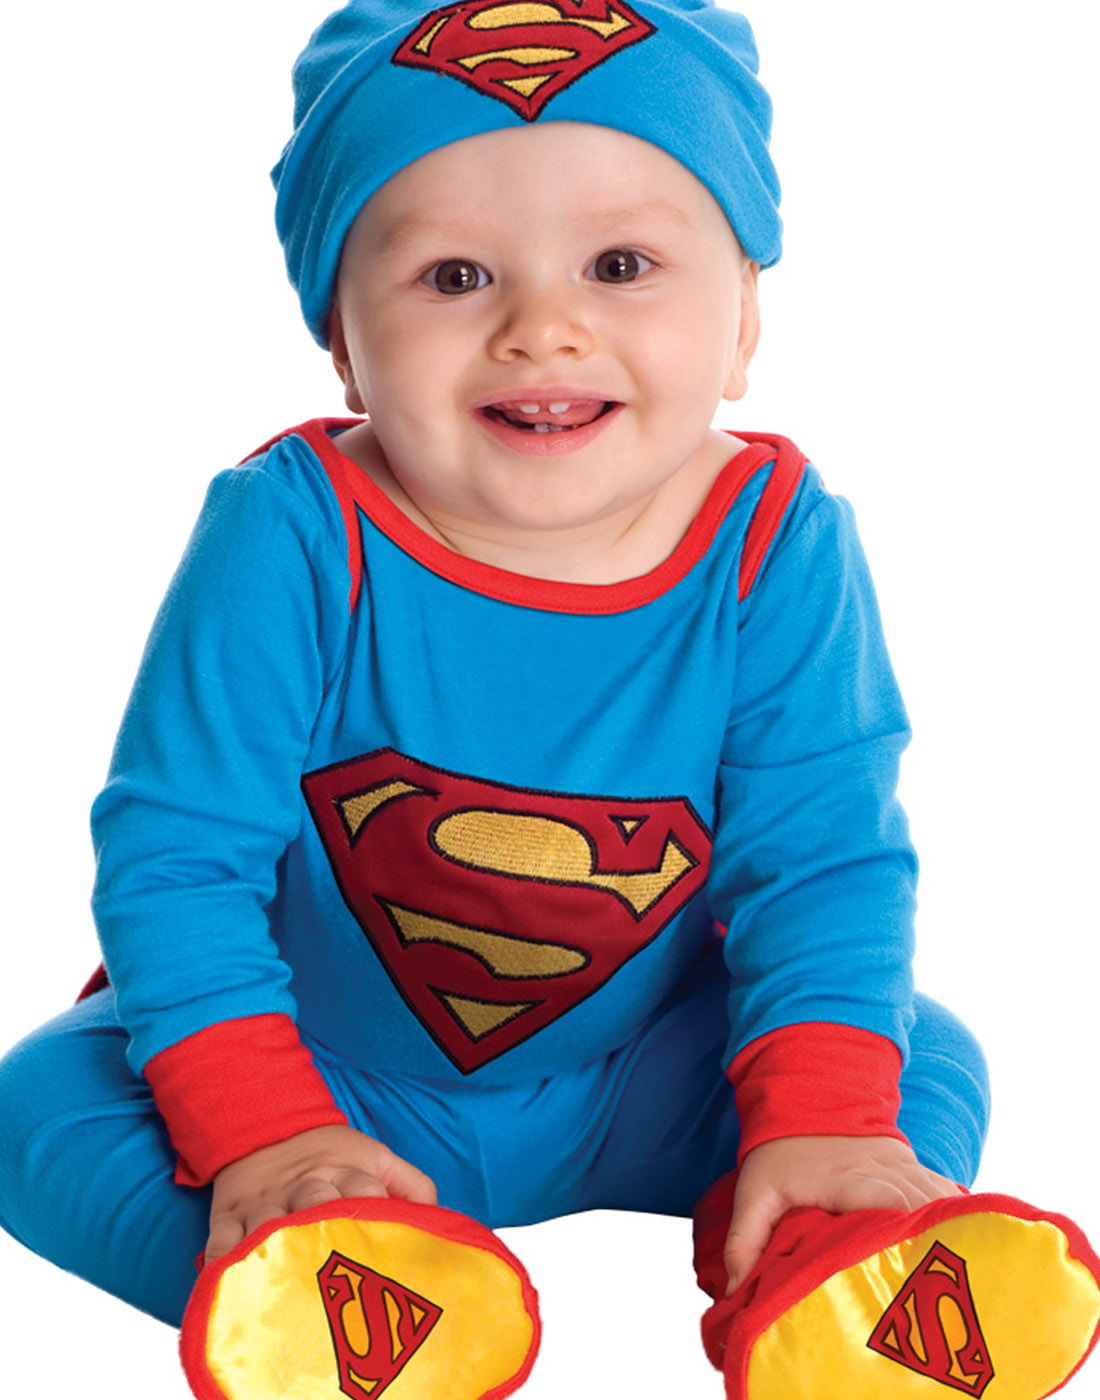 sc 1 st  Walmart & Superman Onesie Infant Halloween Costume - Walmart.com